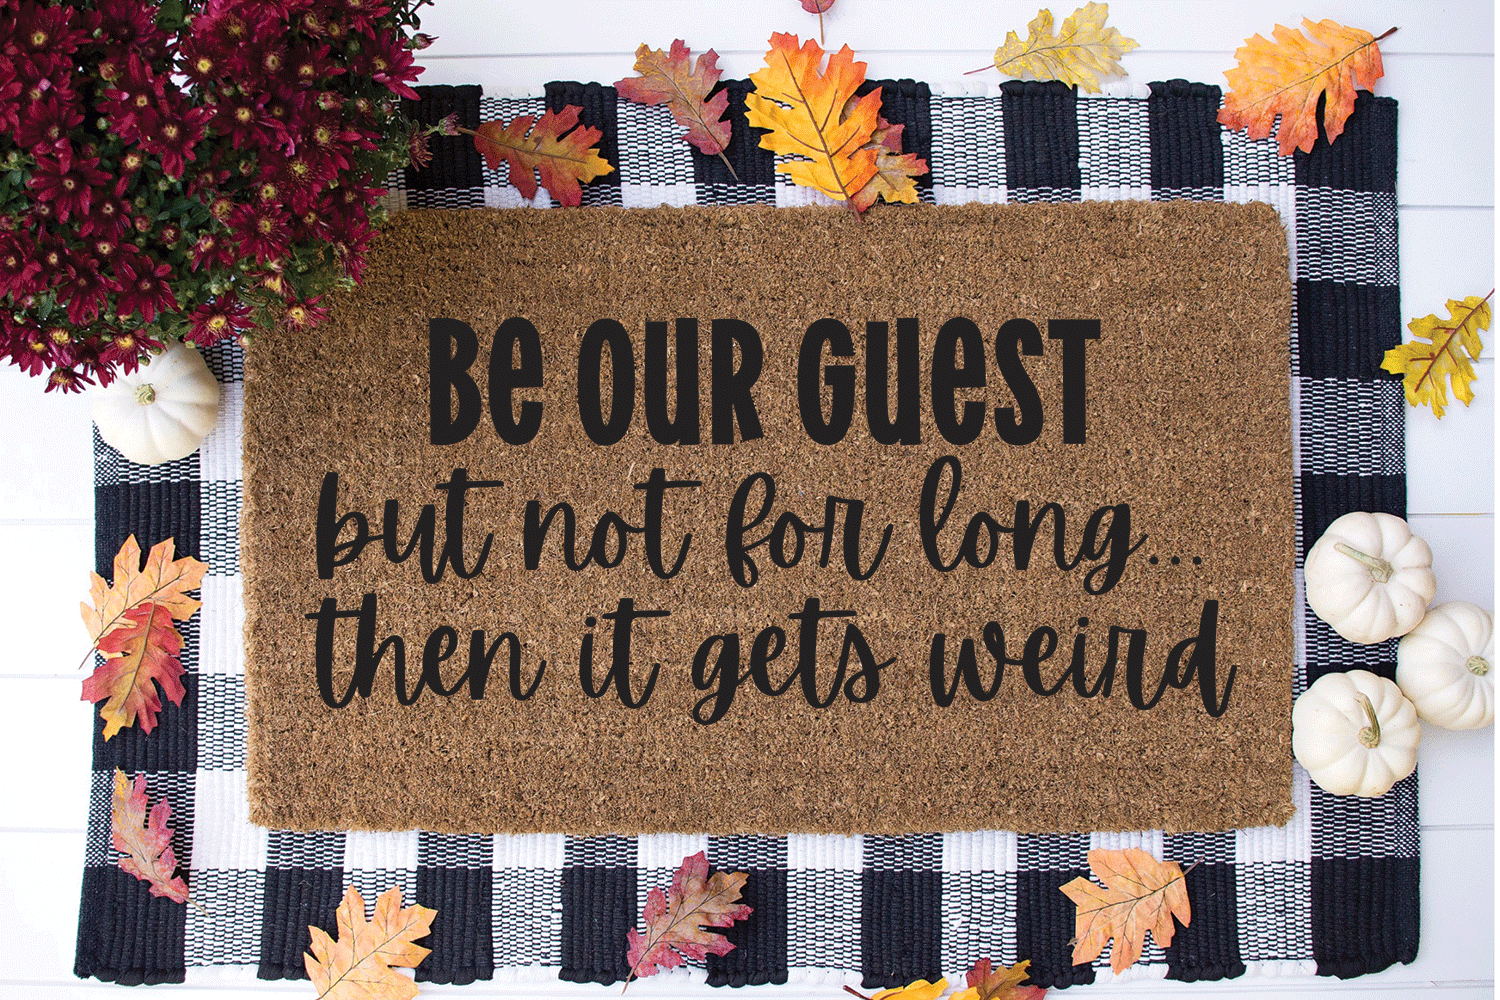 Funny Doormat SVG - Be Our Guest But Not For Long example image 1